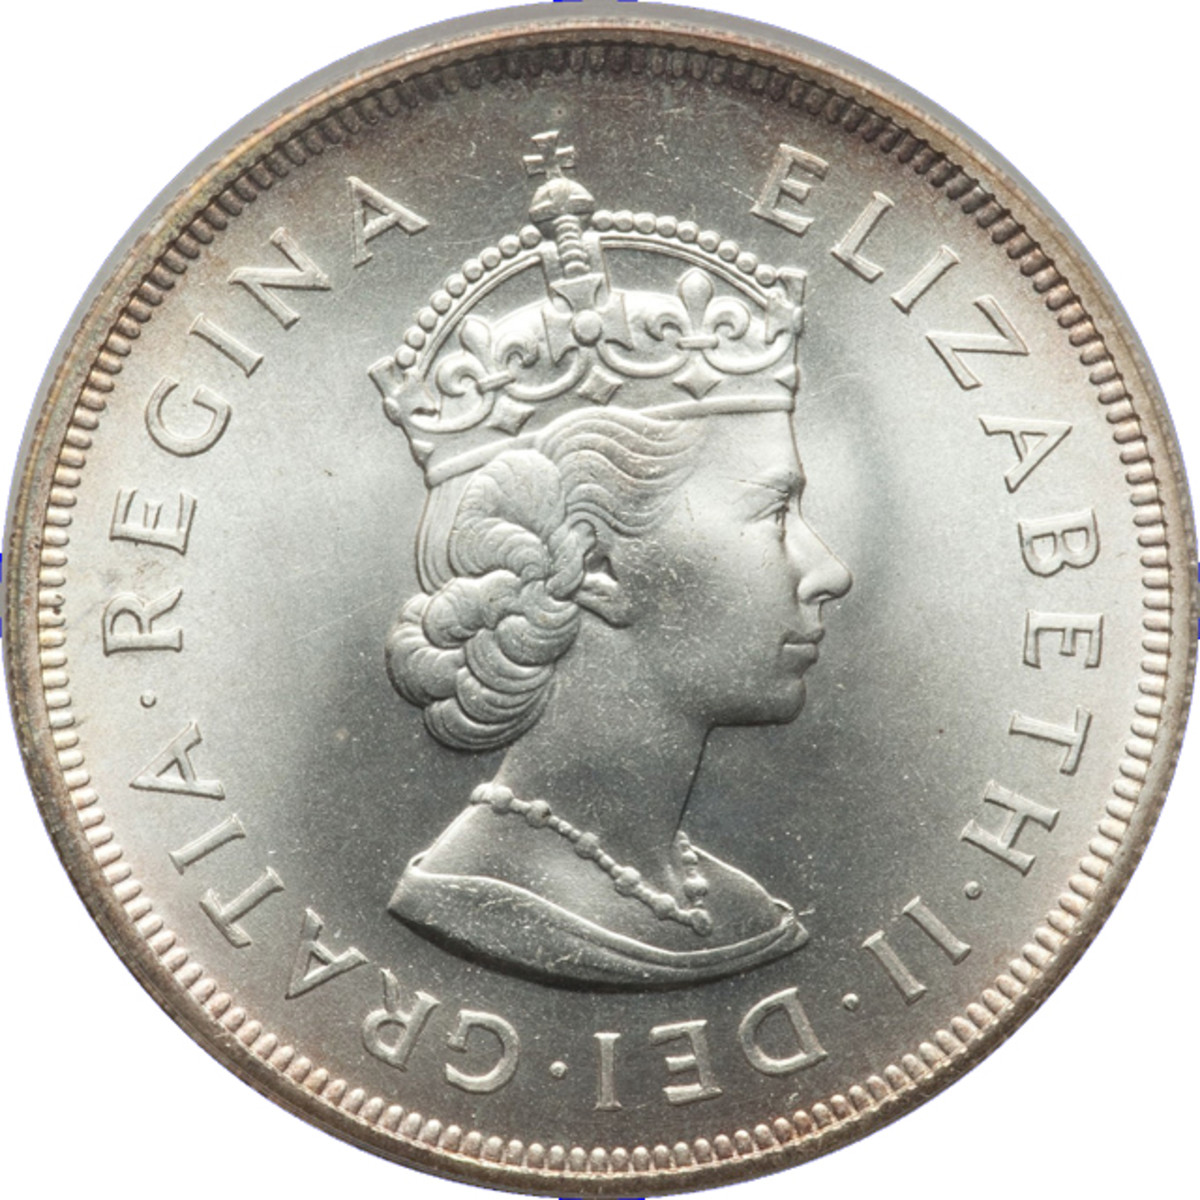 Crowned effigy of Queen Elizabeth by Cecil Thomas used on the coinage of Britain's Crown colonies. The queen wears the stylized heraldic Tudor Crown representative of her authority. Image courtesy & © www.ha.com.